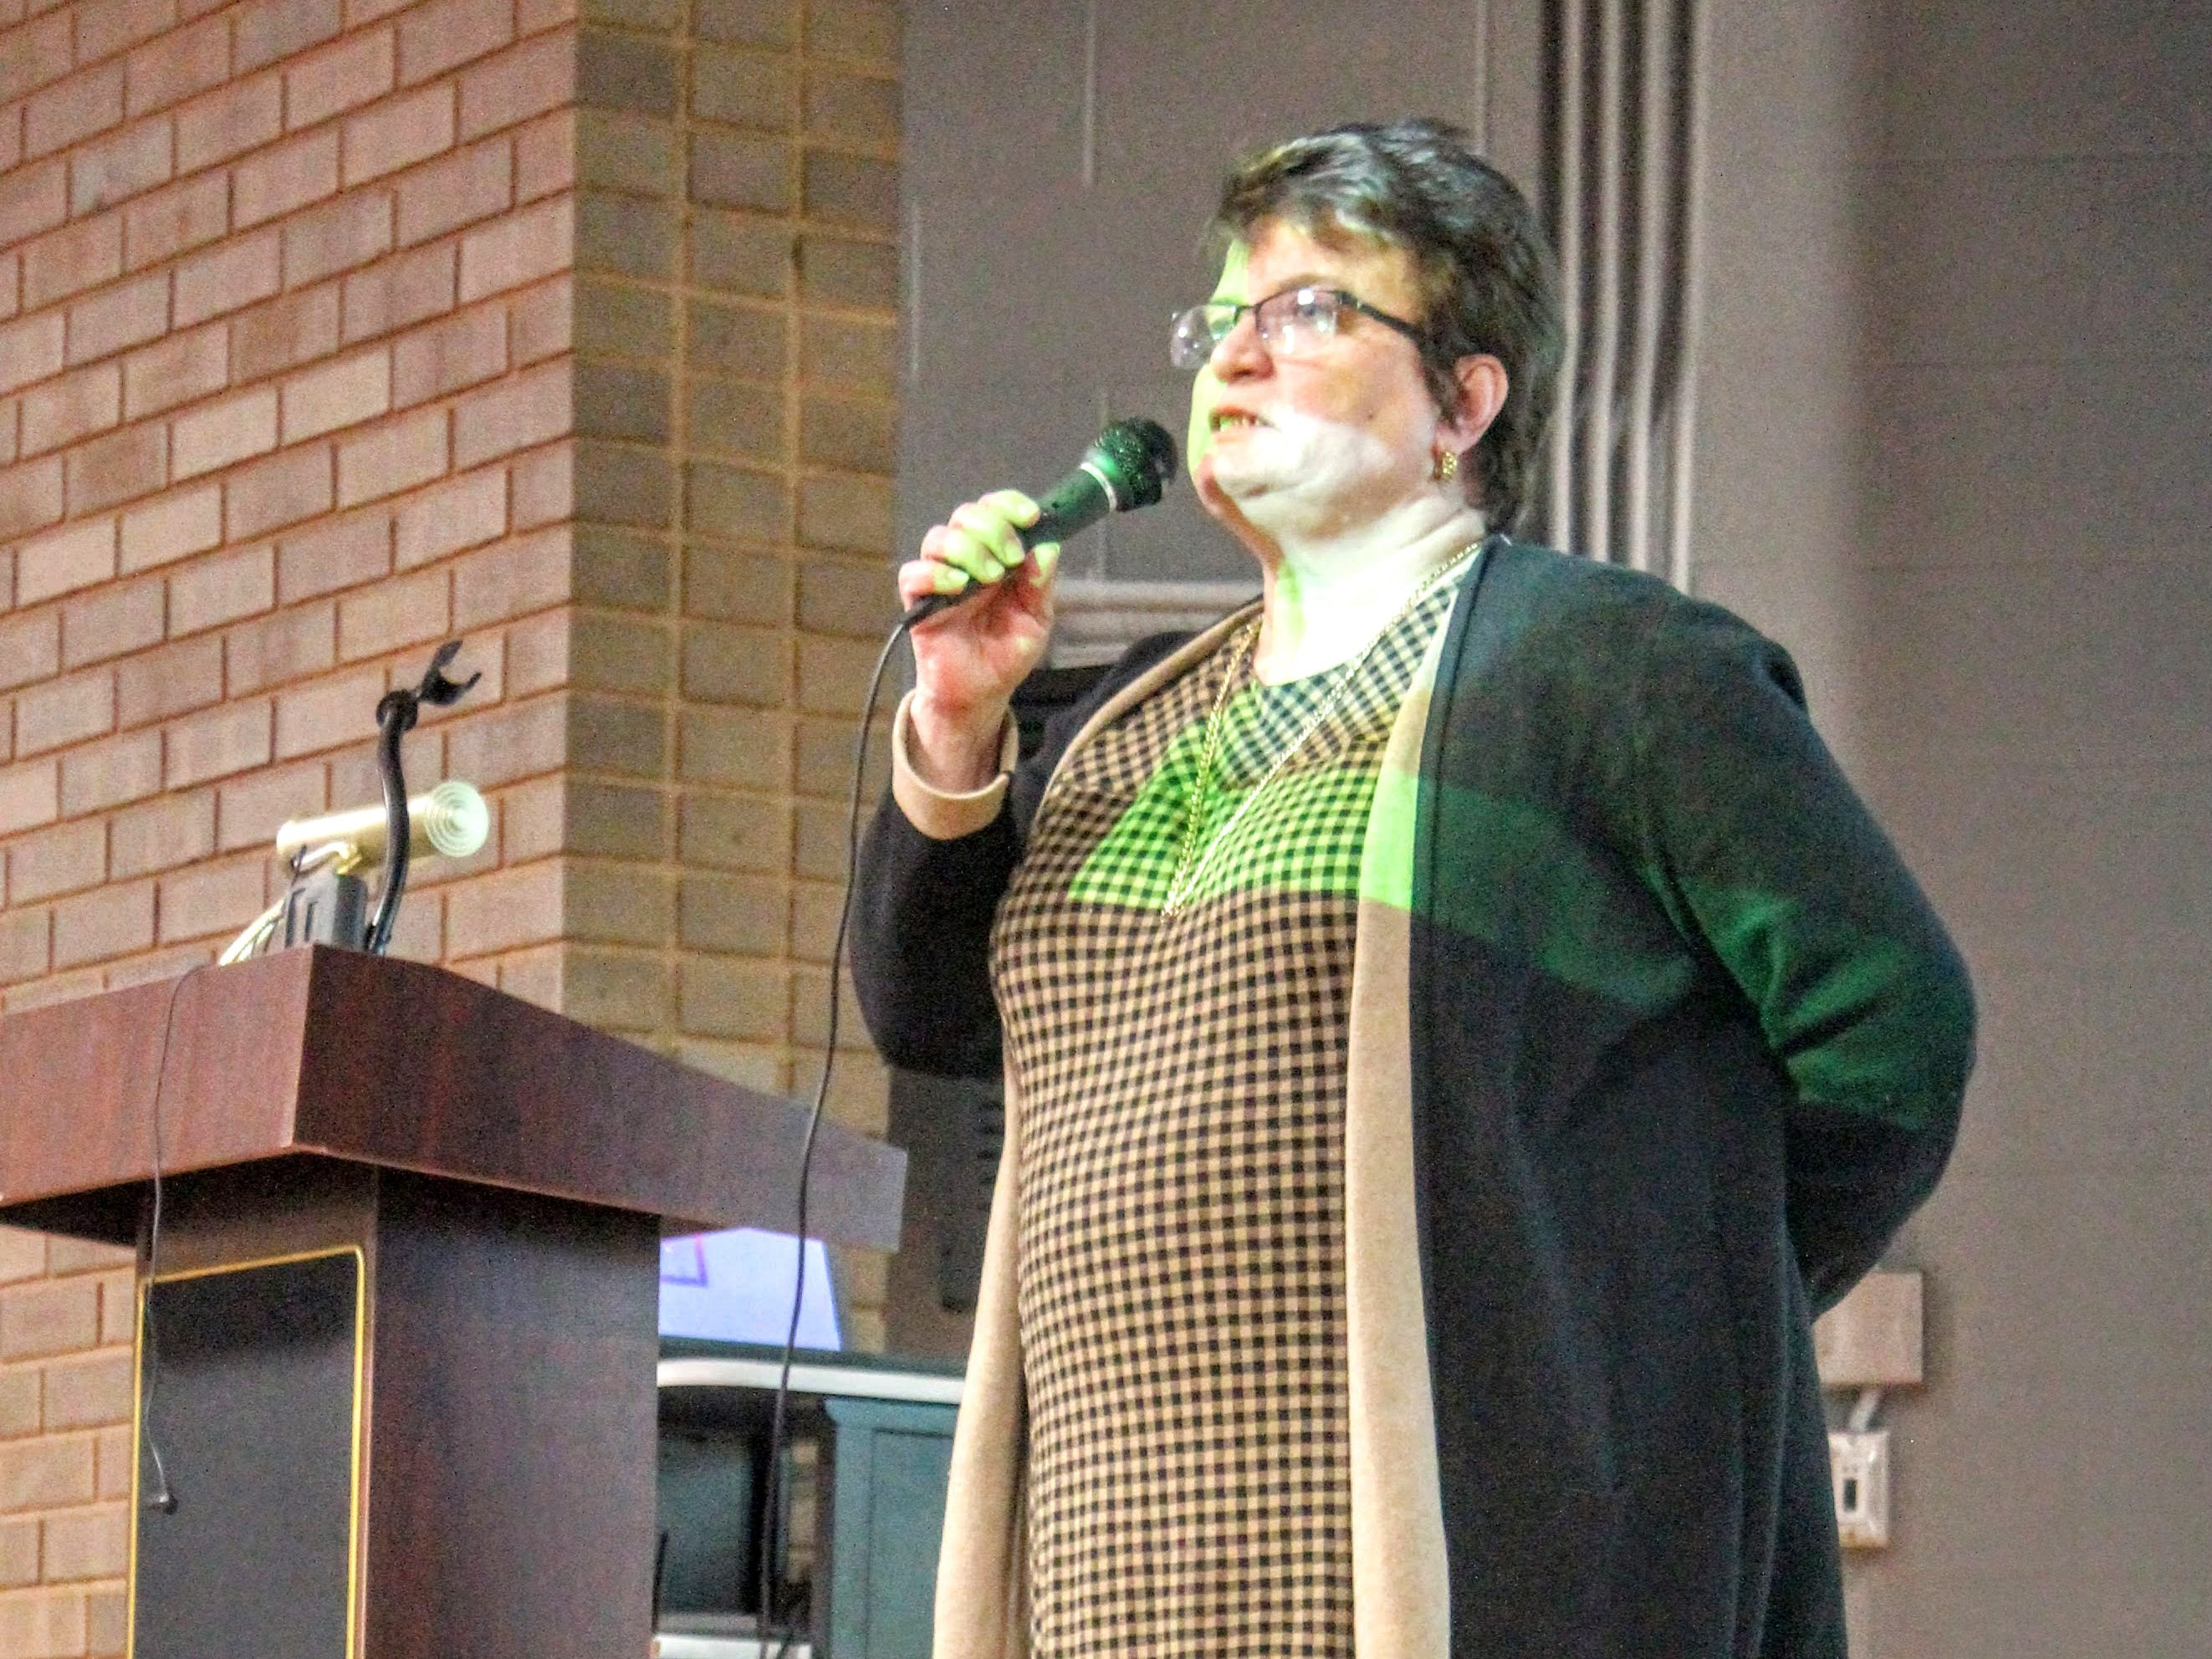 Nancy Darga, a Northville resident and former chief of design for Wayne County Parks, speaks to the crowd at the Save Hines Park meeting Jan. 9 in Livonia.